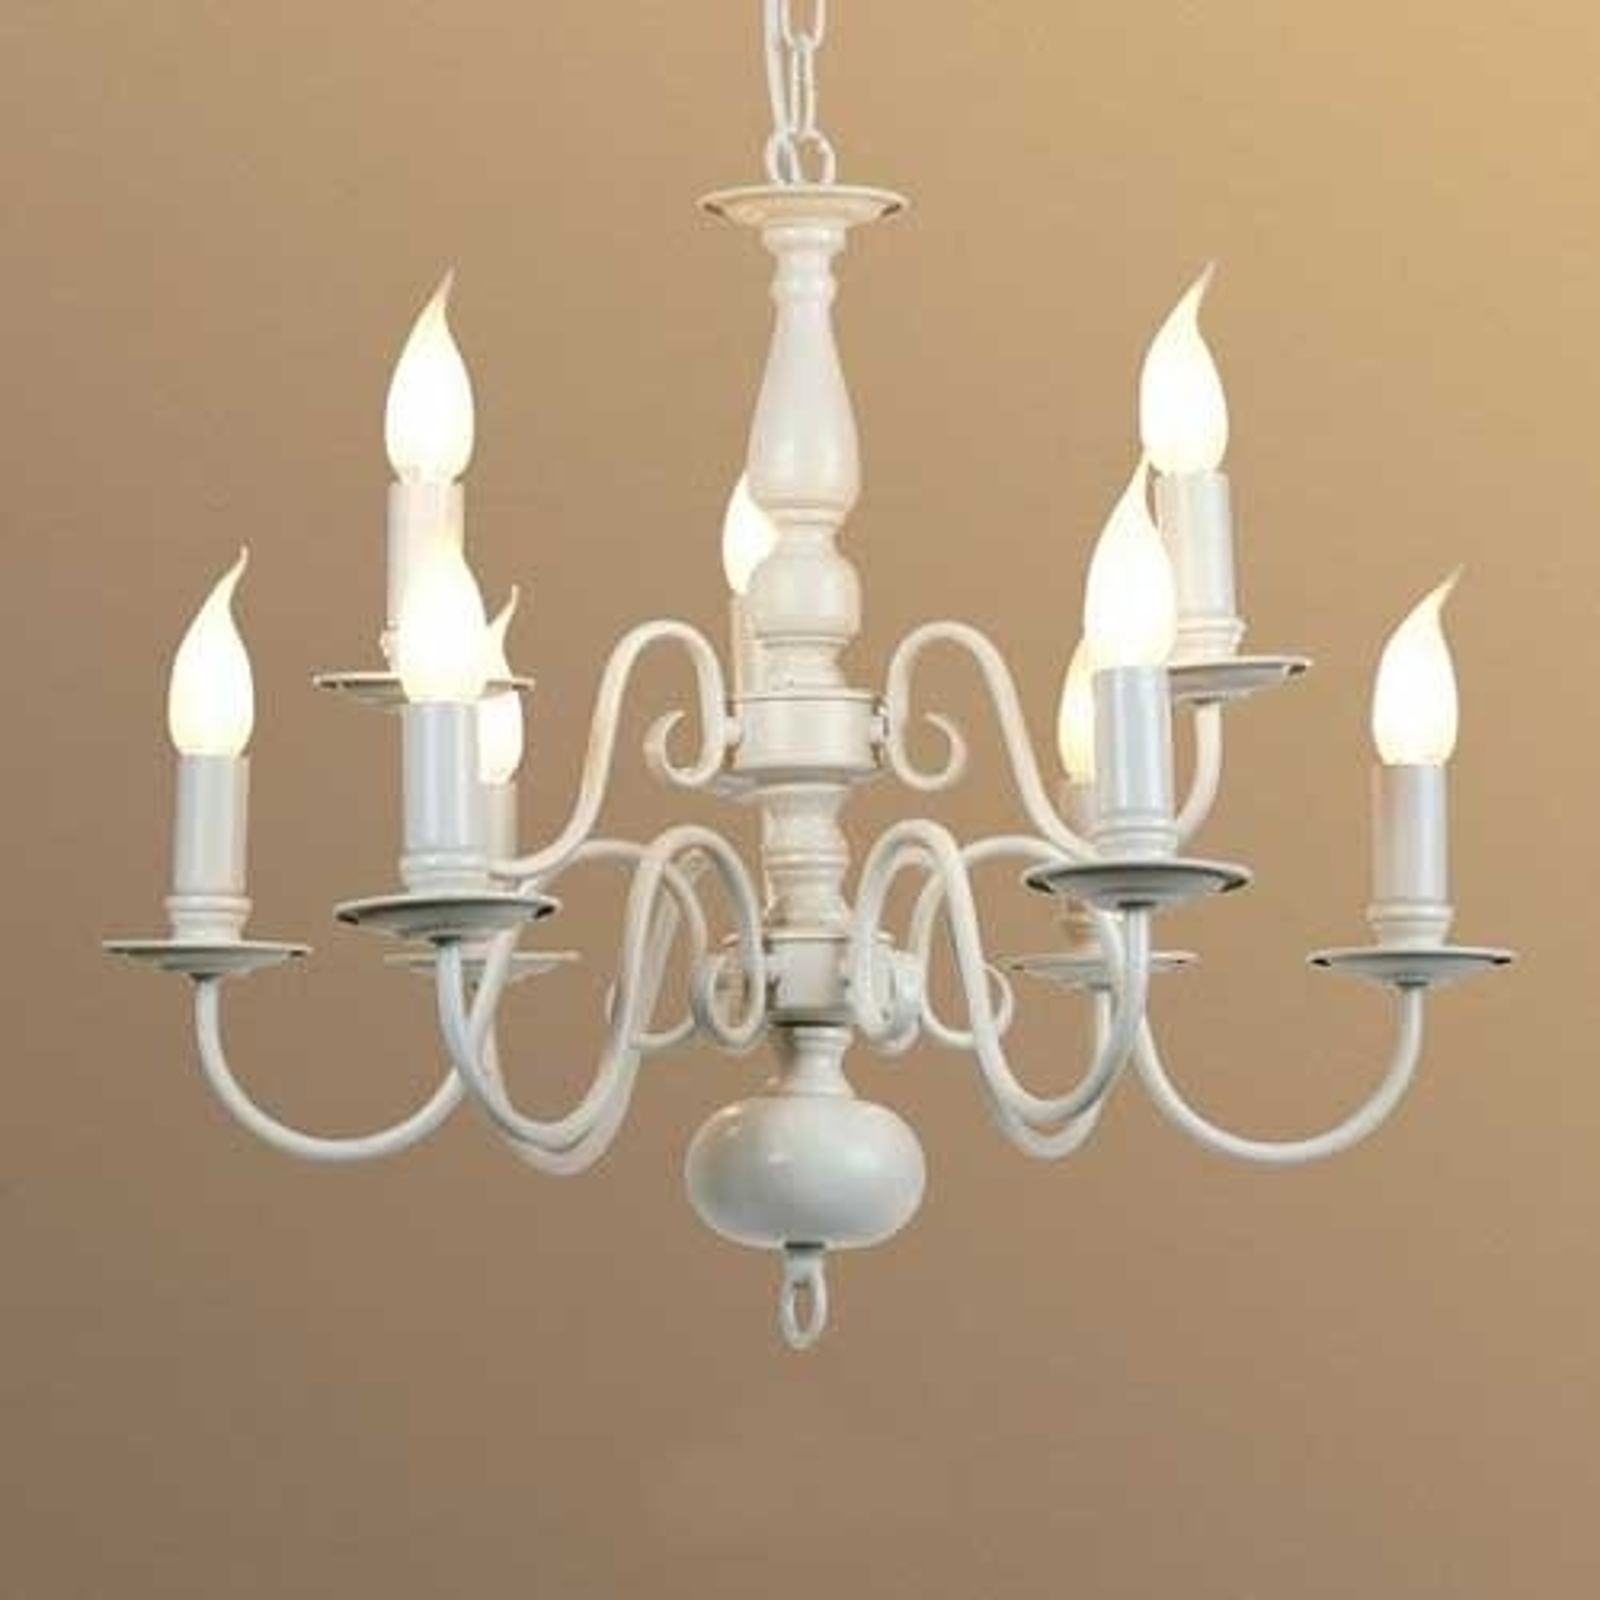 9-bulb MAYRA chandelier  in a country house style_1032221_1